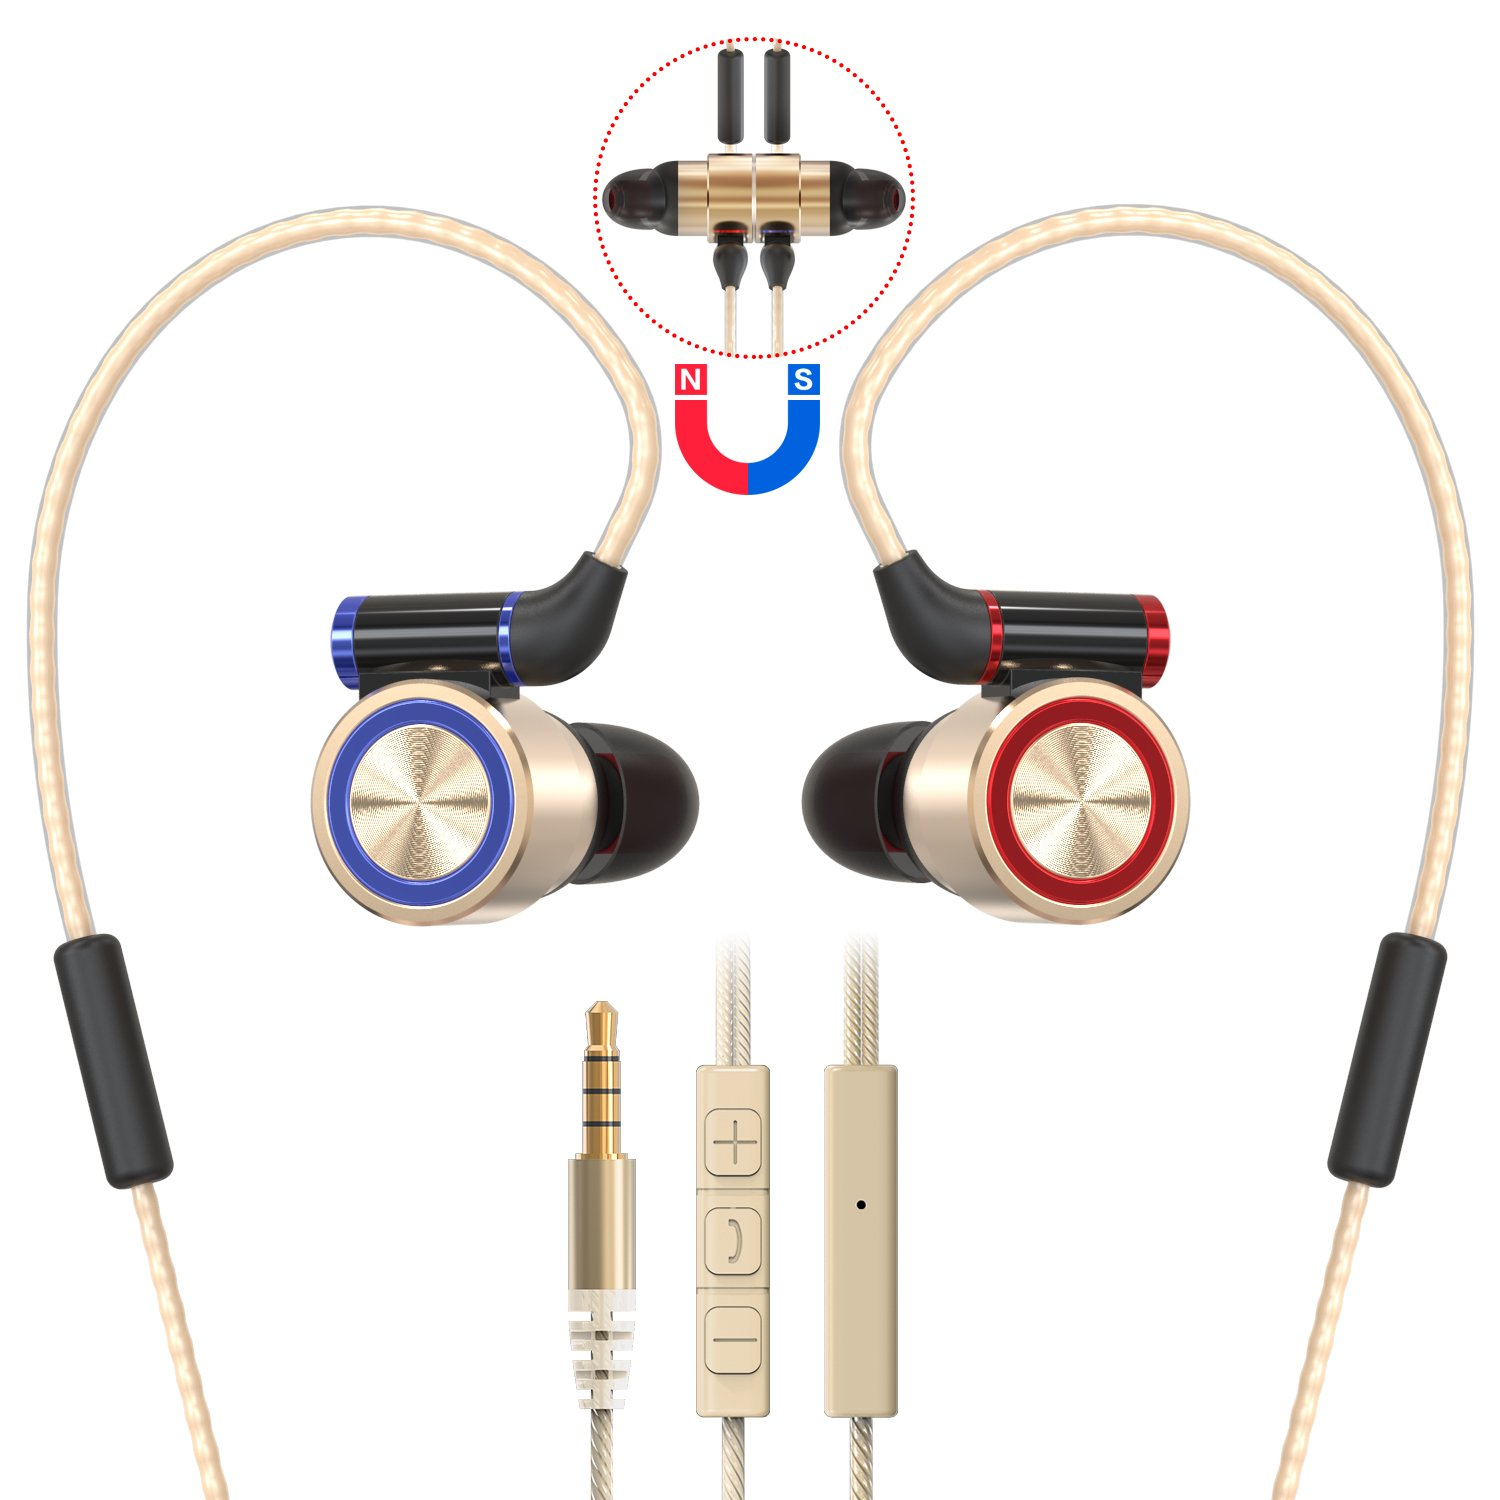 Sports Earbuds with Mic Volume Control Magnetic Attraction, Metal In-ear Running Headphones, Stereo Workout Earphones Wired for 3.5mm Jack Noise Isolating Bass Android/IOS Earbuds (Gold)